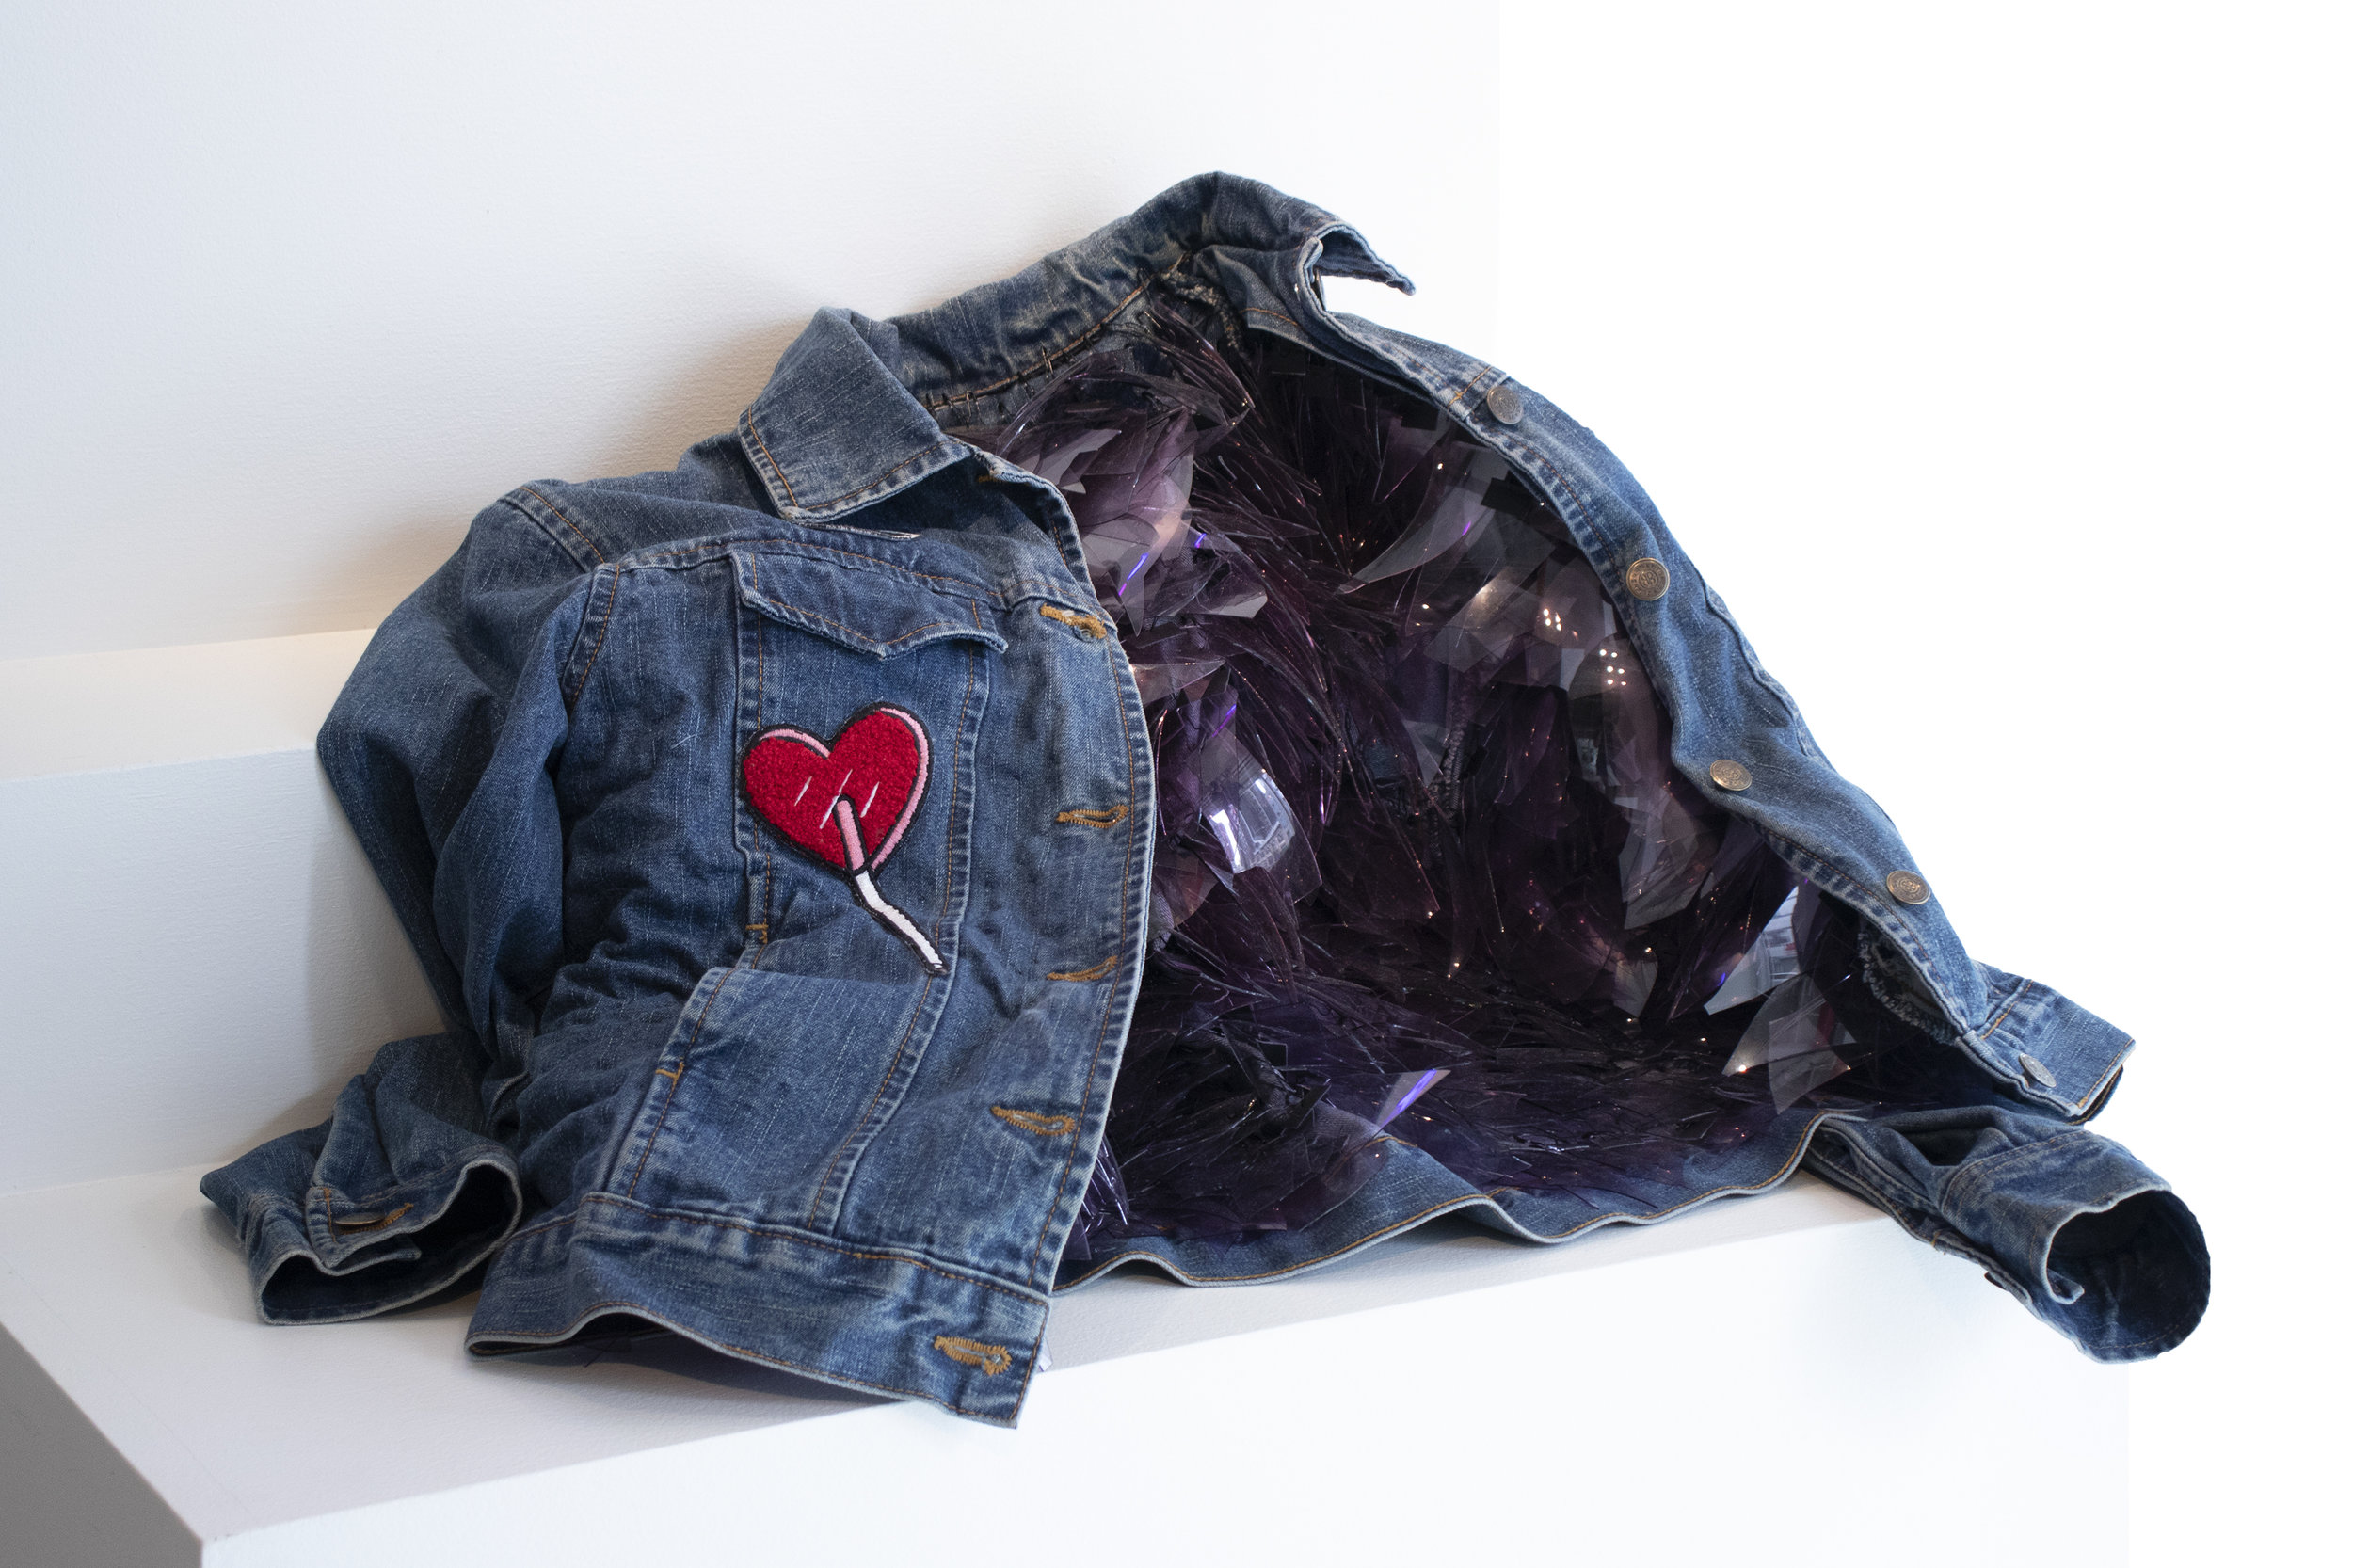 Victoria Ahmadizadeh    Selective Memory   glass, found denim jacket, mixed media 2018